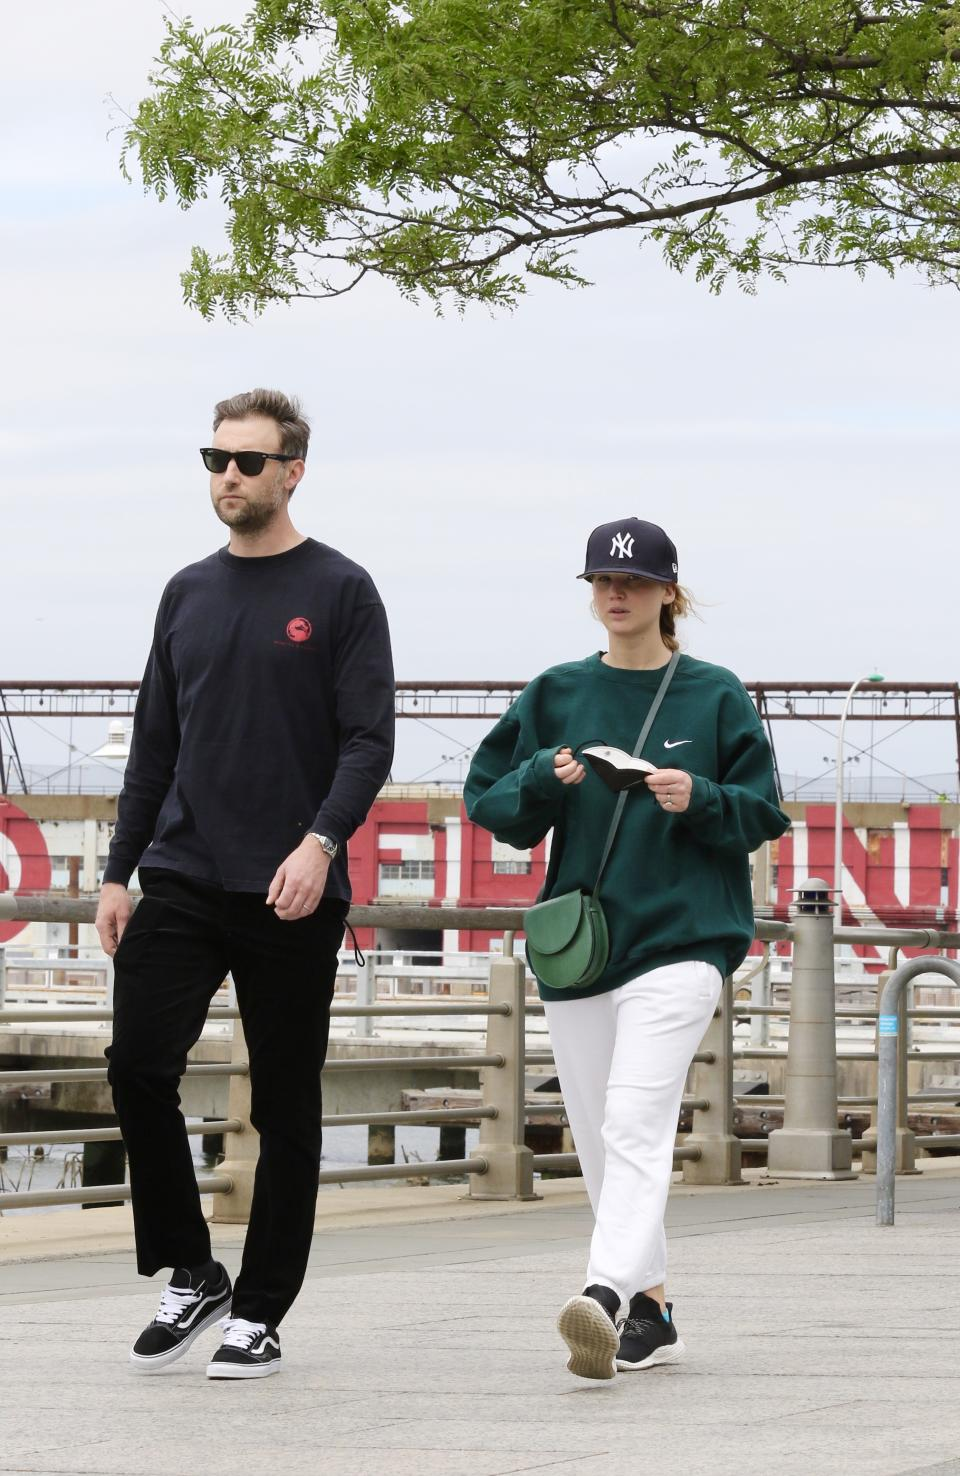 Jennifer Lawrence is seen out for a walk with husband, Cooke Maroney, by the Hudson River in NYC on May 24, 2021. (Photo: MEGA/GC Images)